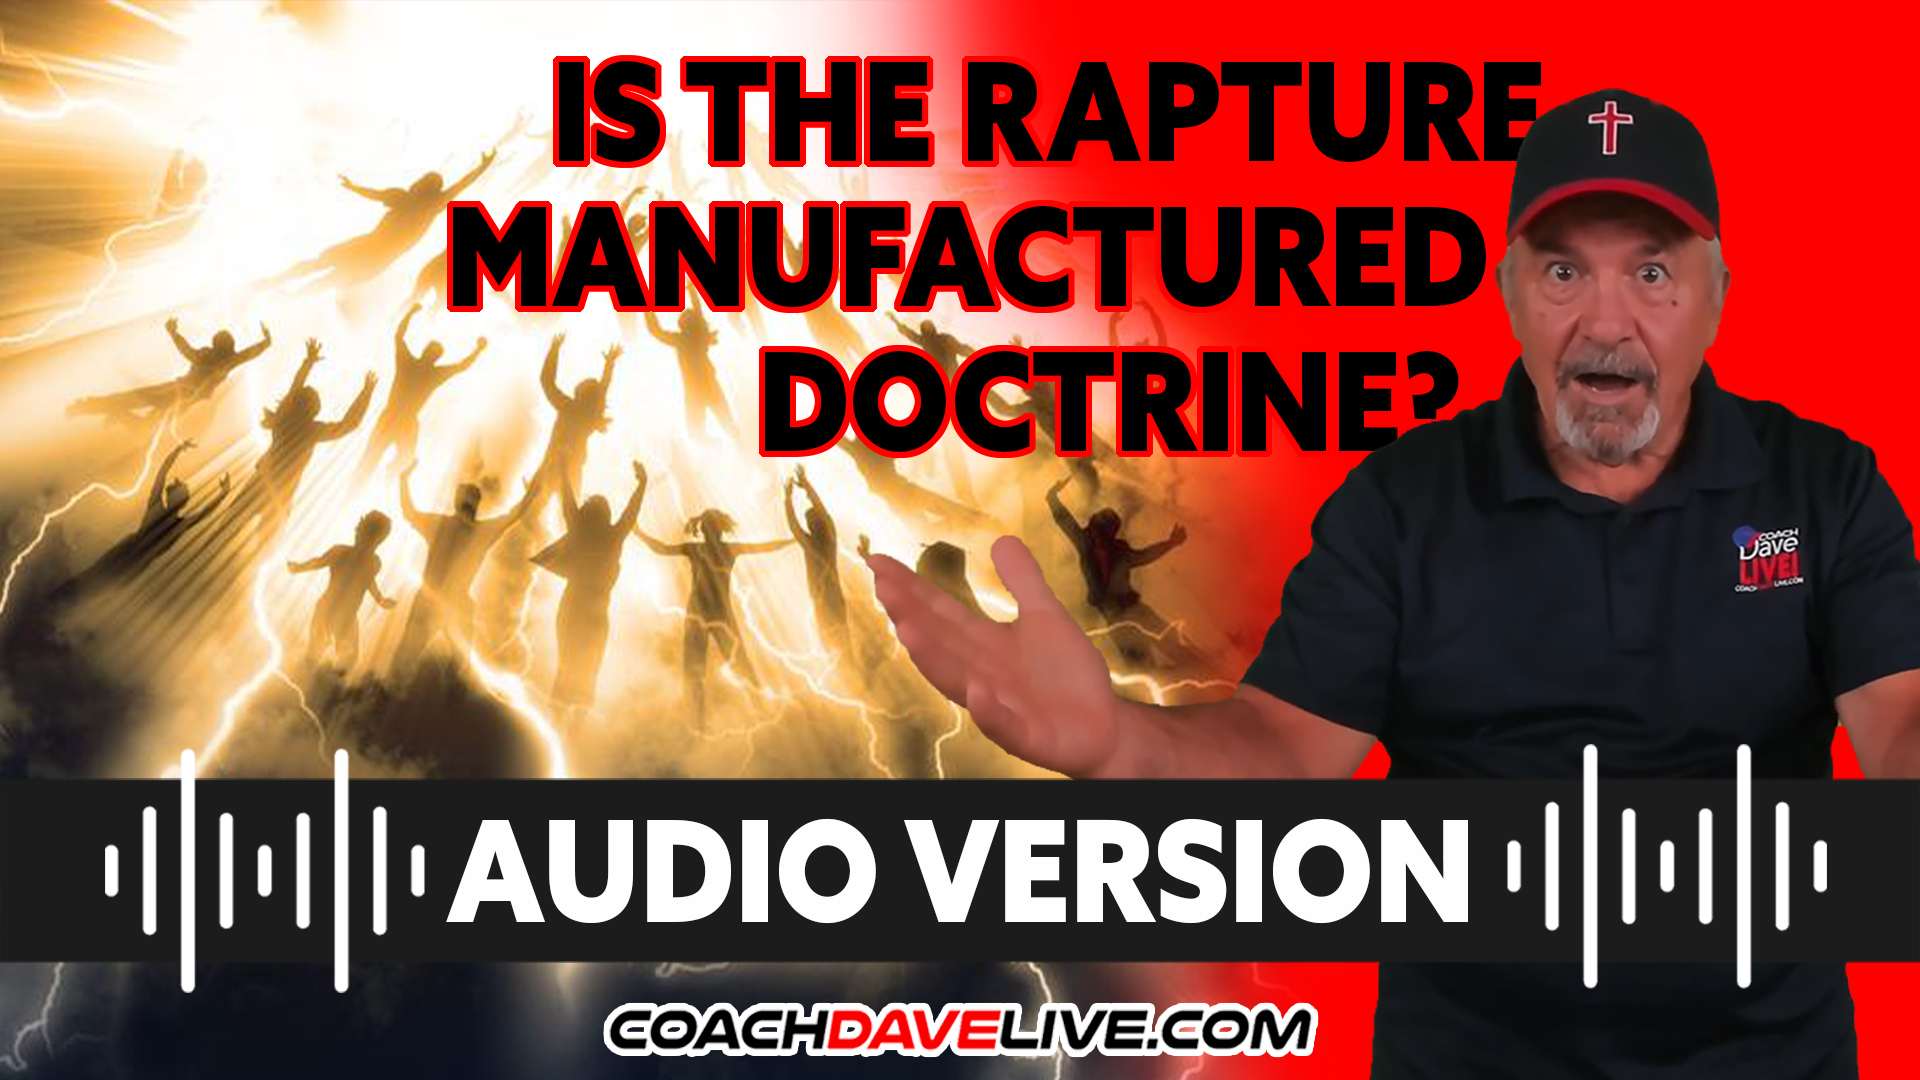 Coach Dave LIVE | 9-7-2021 | IS THE RAPTURE MANUFACTURED DOCTRINE? - AUDIO ONLY